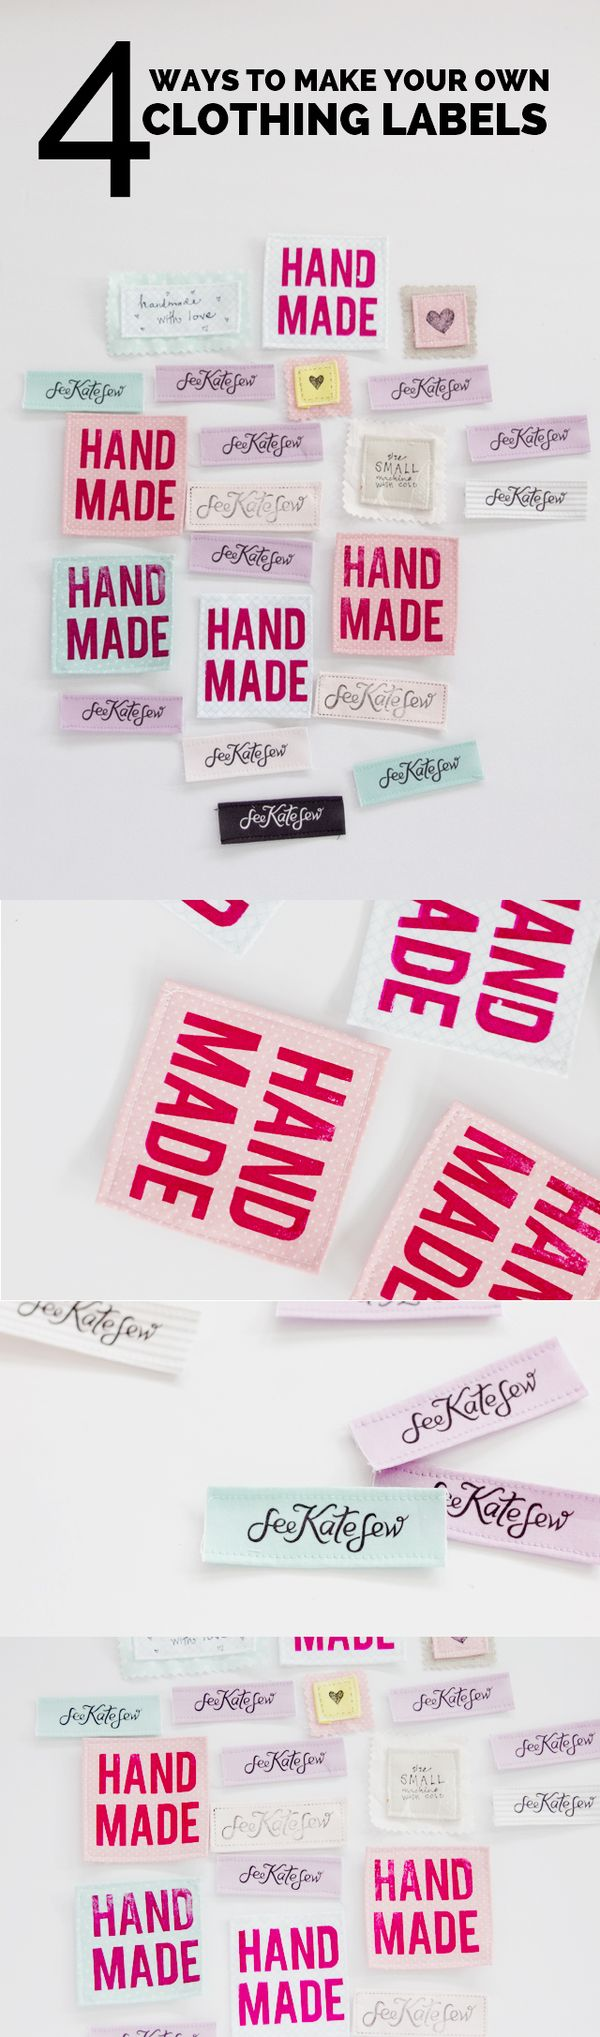 4 Ways To Make Your Own Clothing Labels With Hpx360 See Kate Sew Sewing Labels Make Your Own Labels Clothing Labels